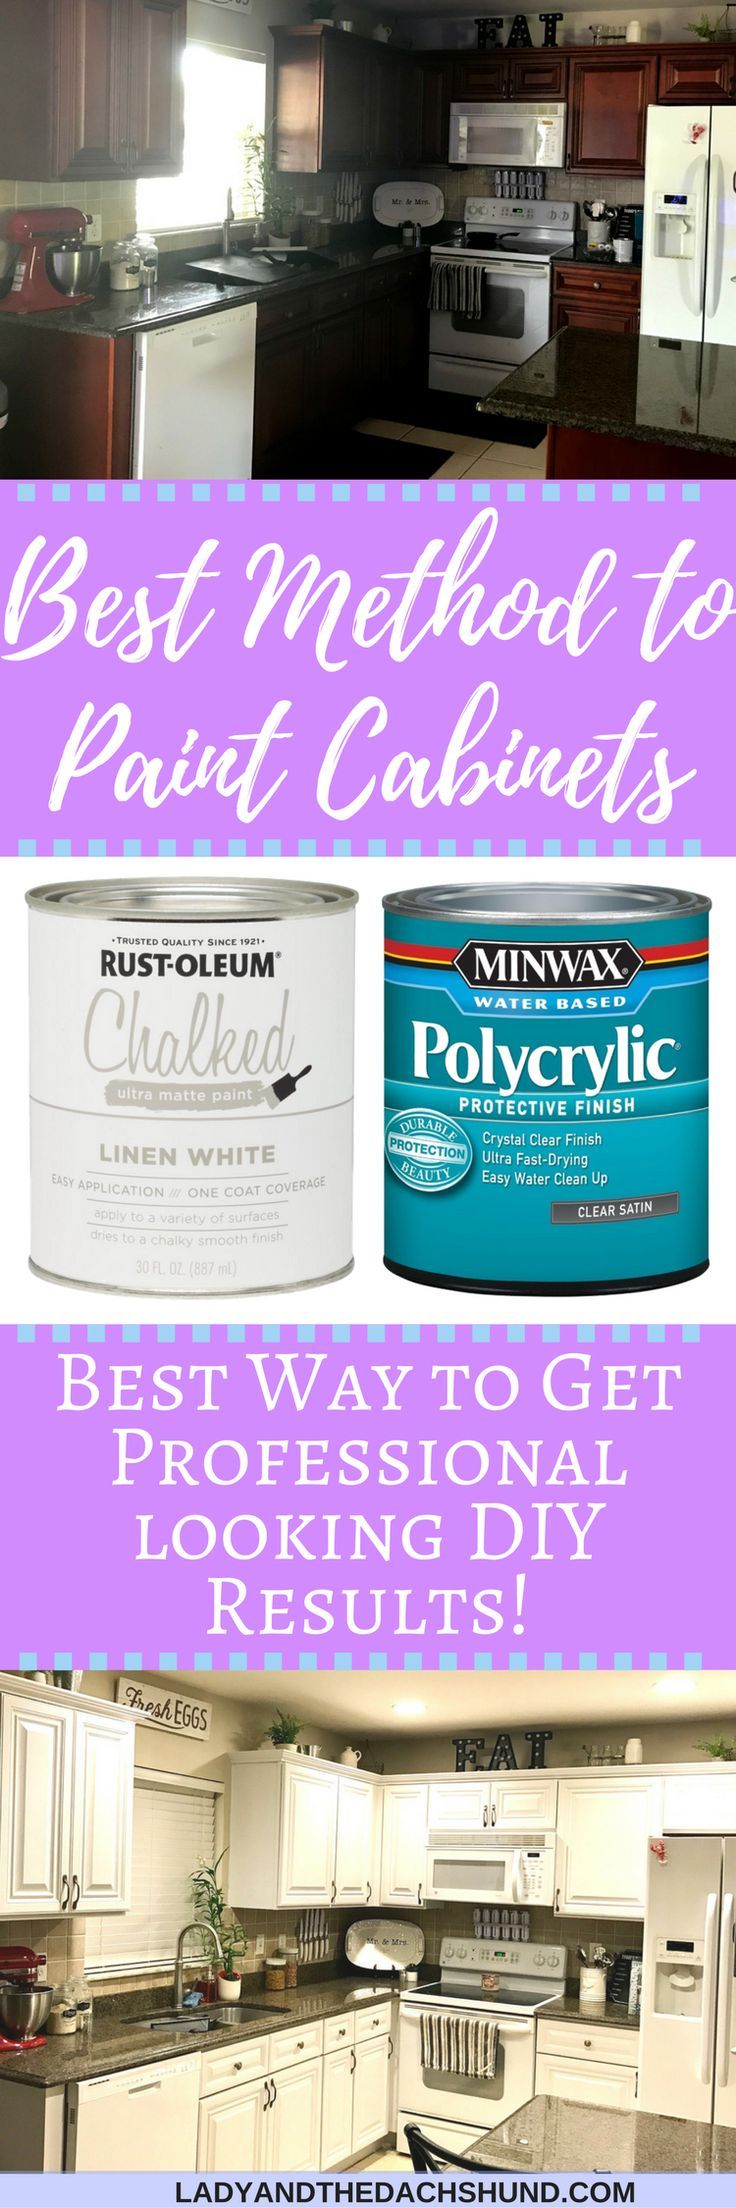 diy painted kitchen cabinets chalk paint rust oleum chalked paint helped us turn